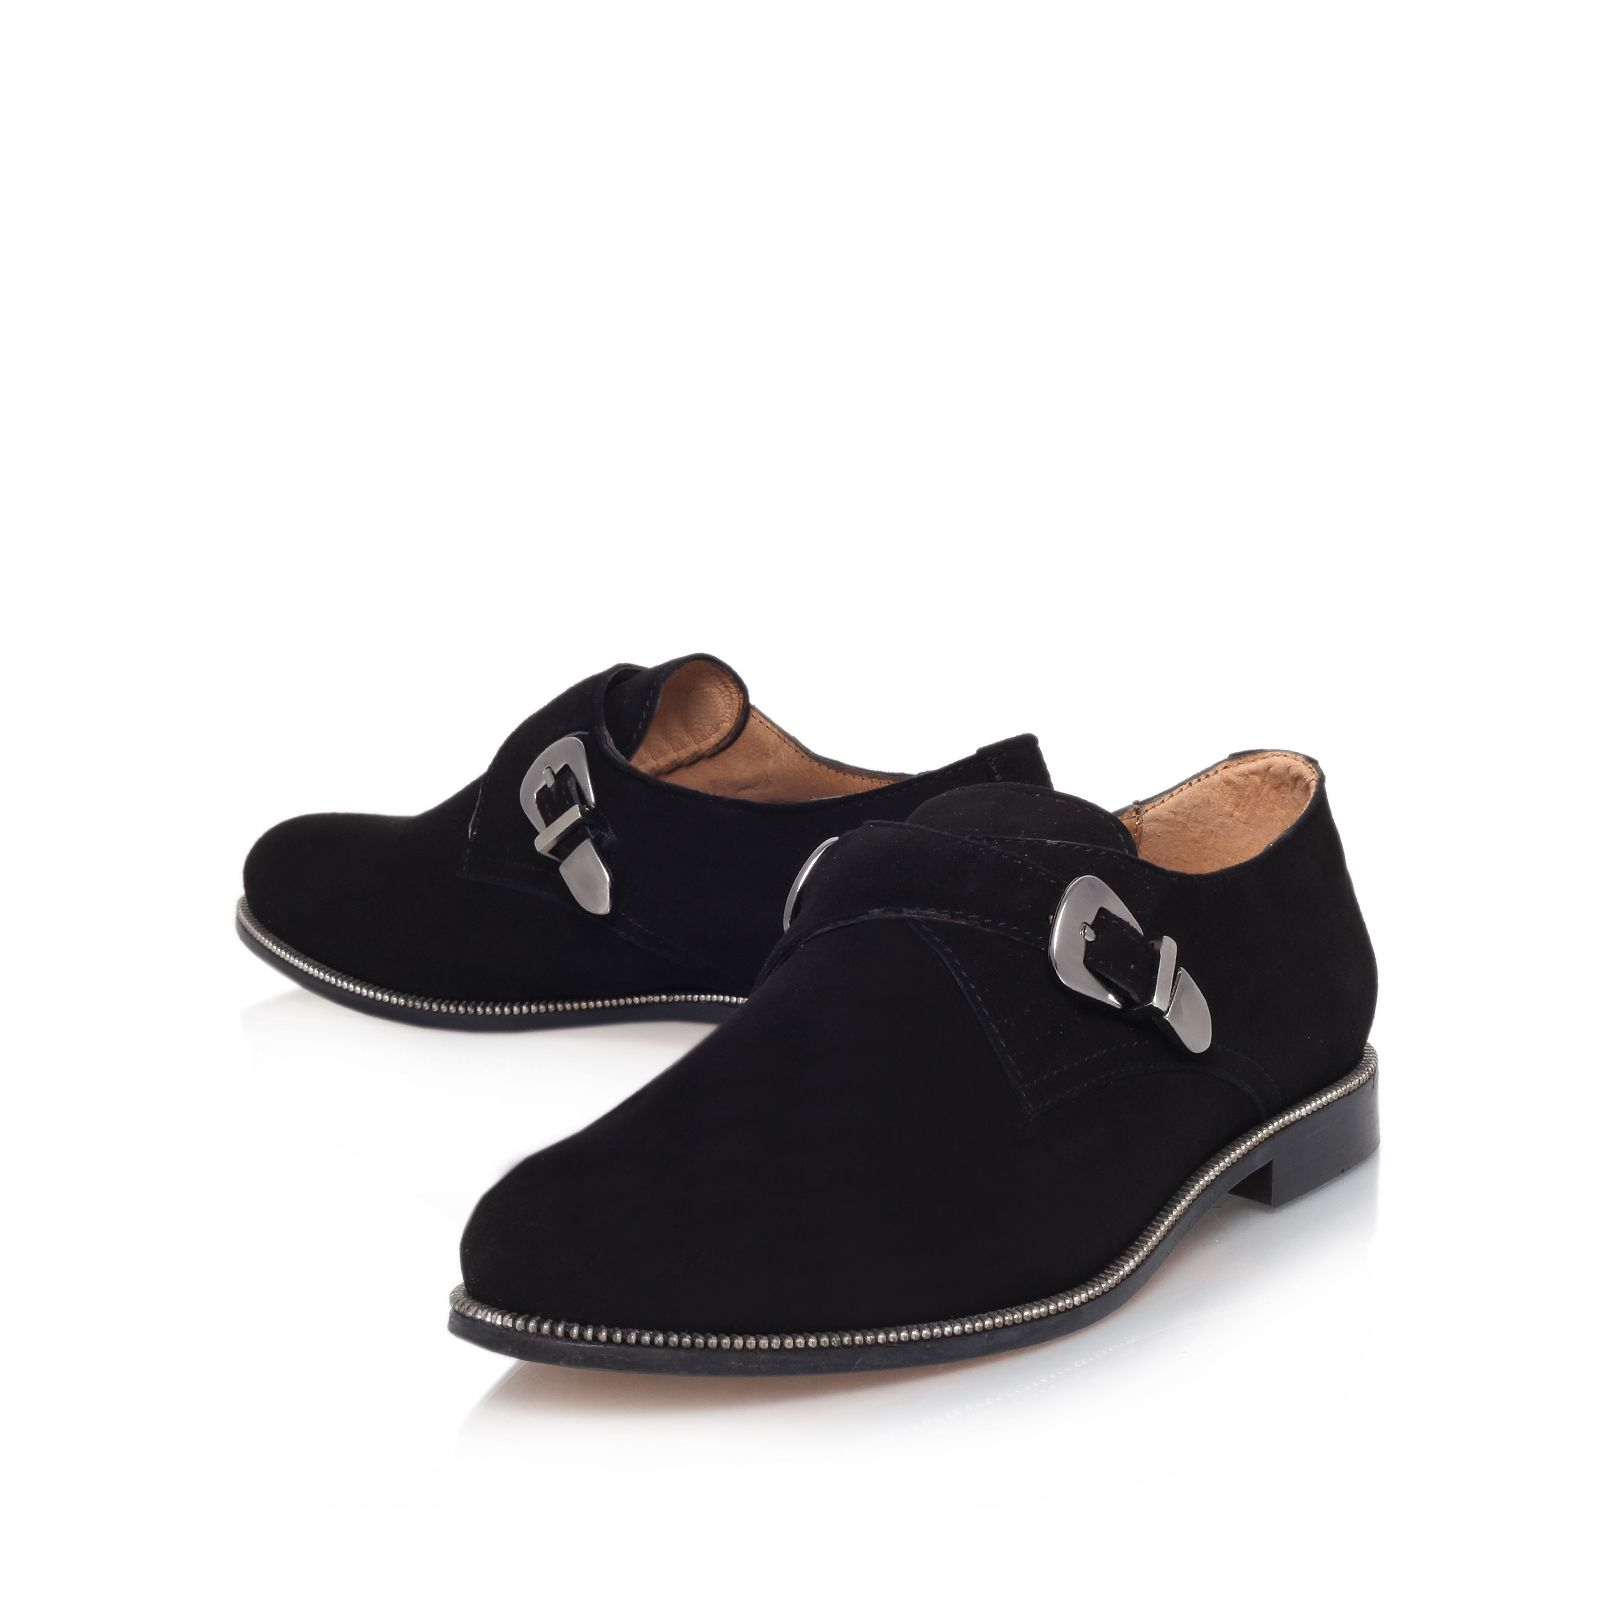 Picadilly flat loafer